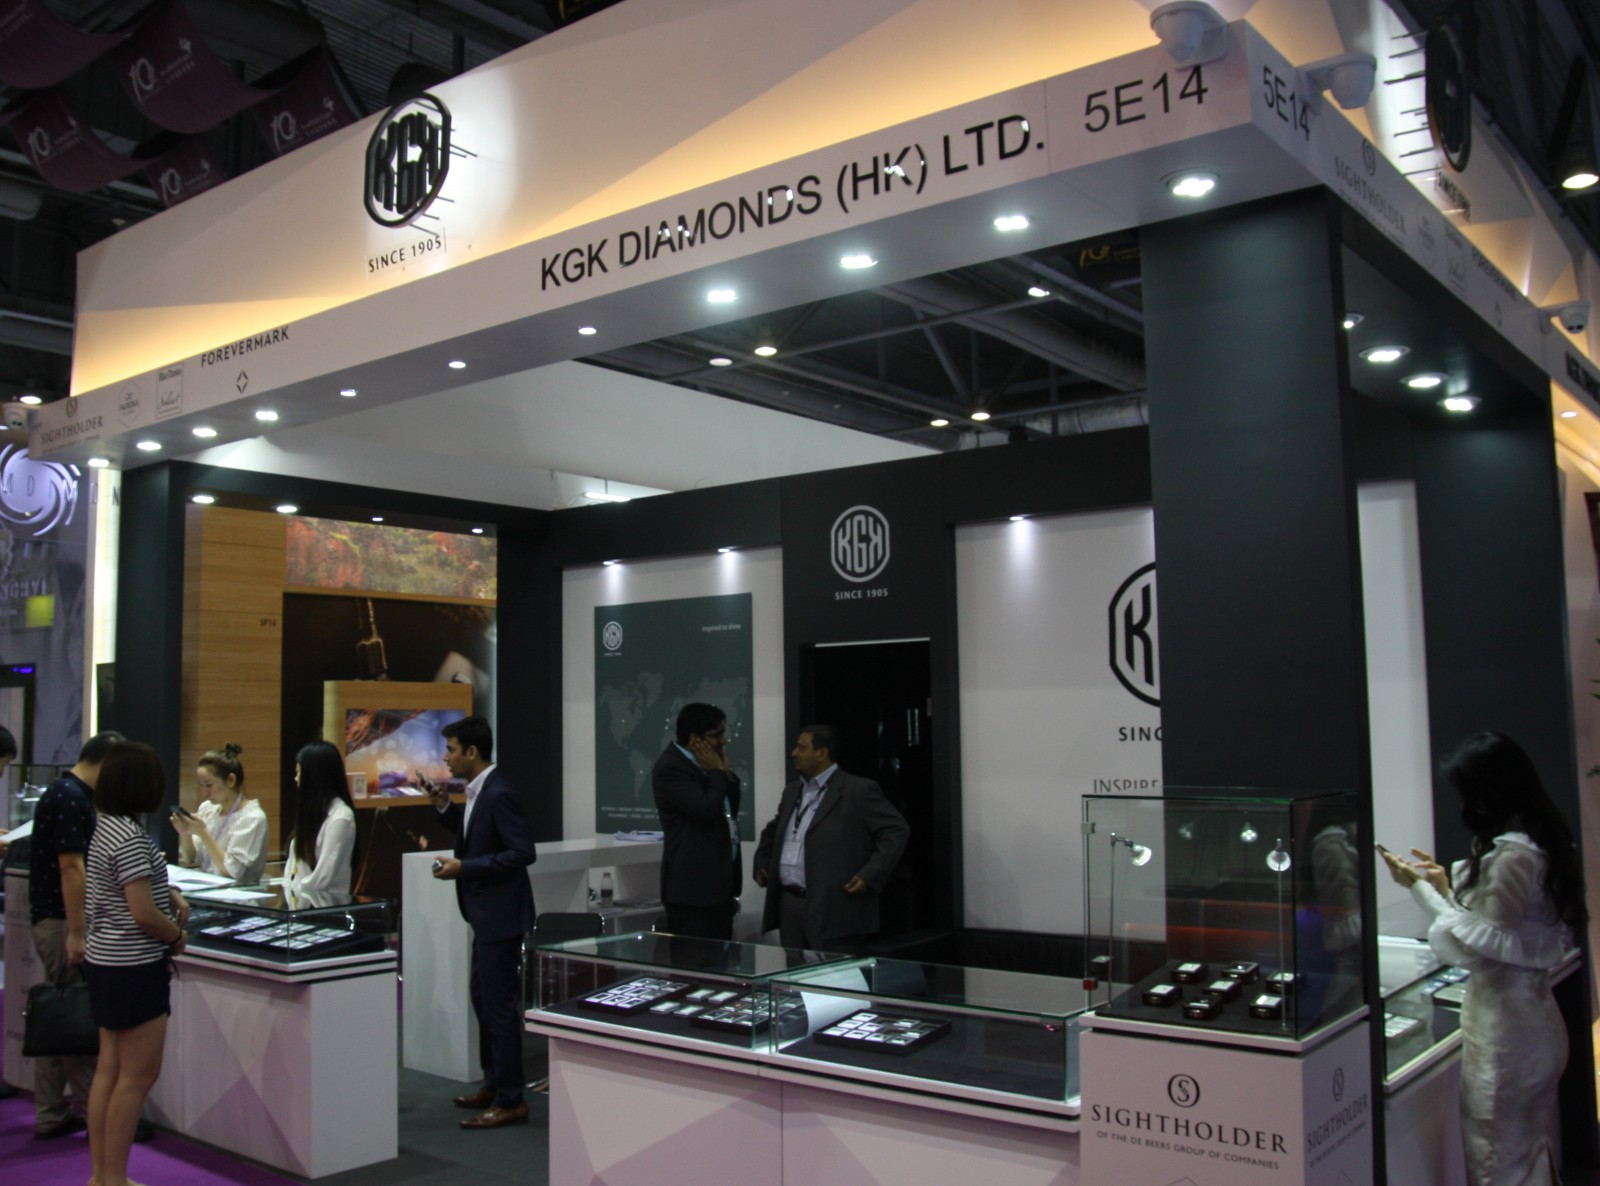 KGK Diamonds booth at Hong Kong Jewellery Show Sep 2016KGK Diamonds booth at Asiaworld- Expo Hong Kong Sep 2016